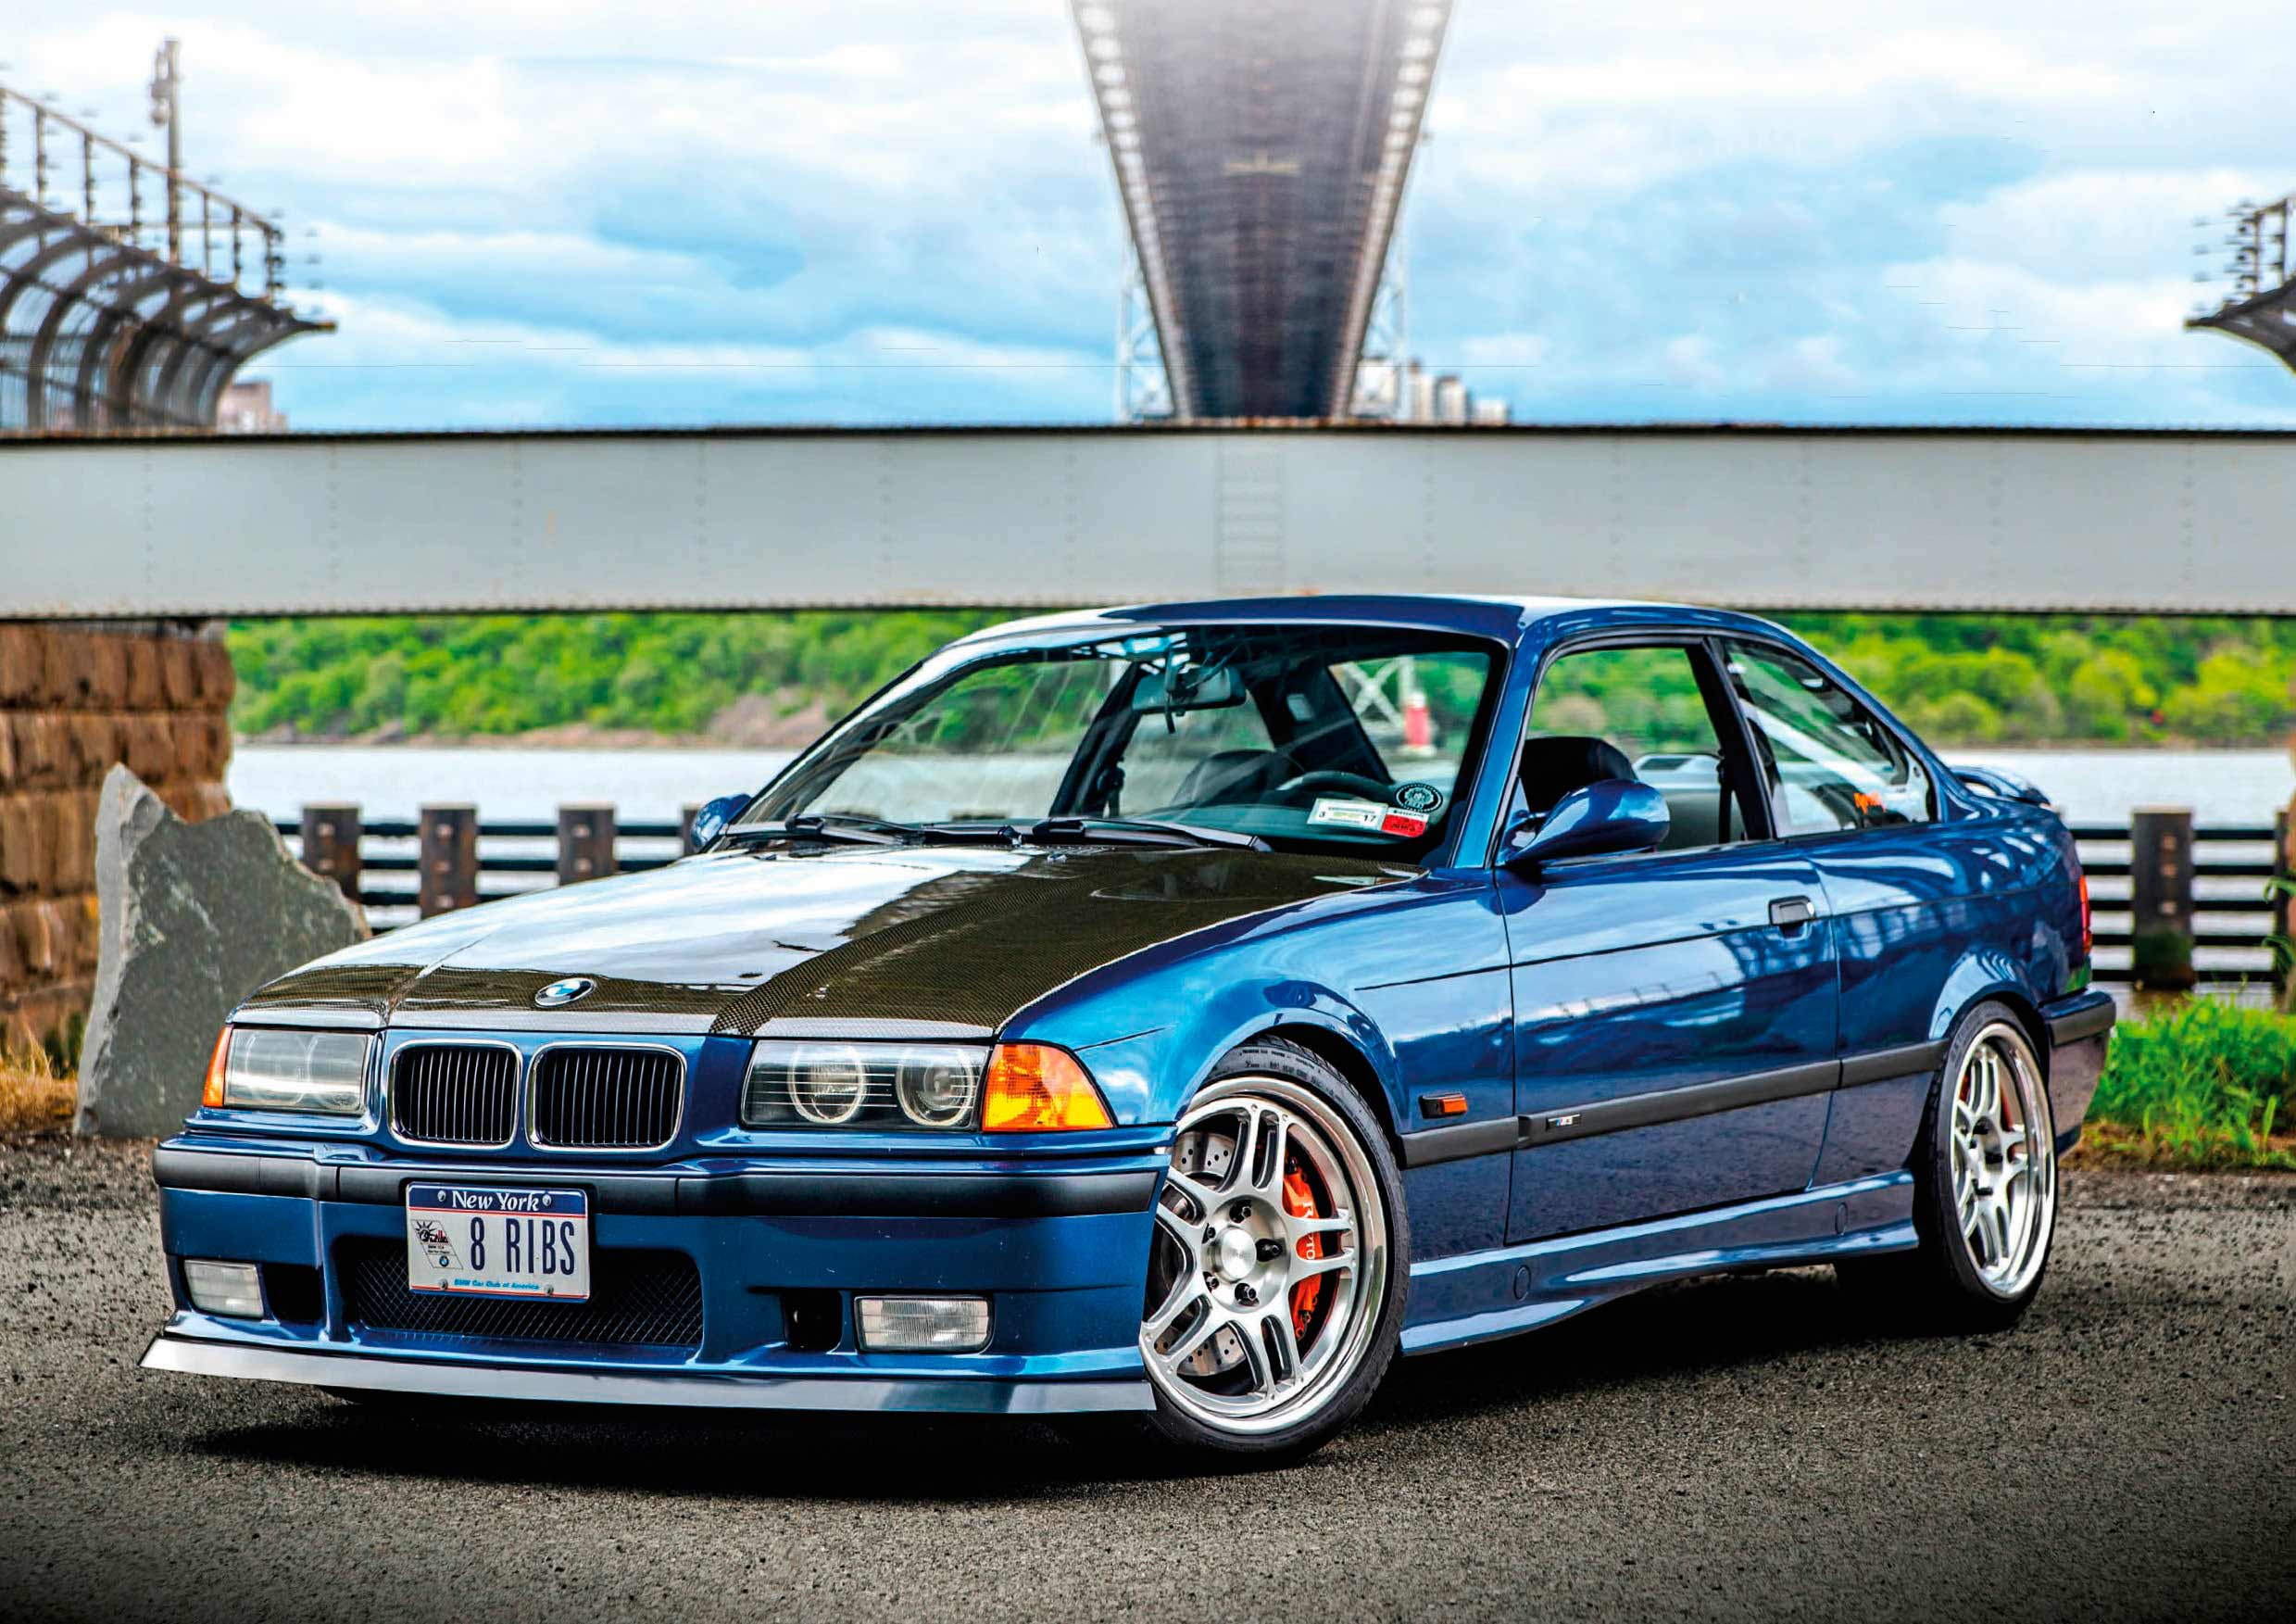 American Express supercharged 1995 BMW M3 E36 458whp Stateside ...